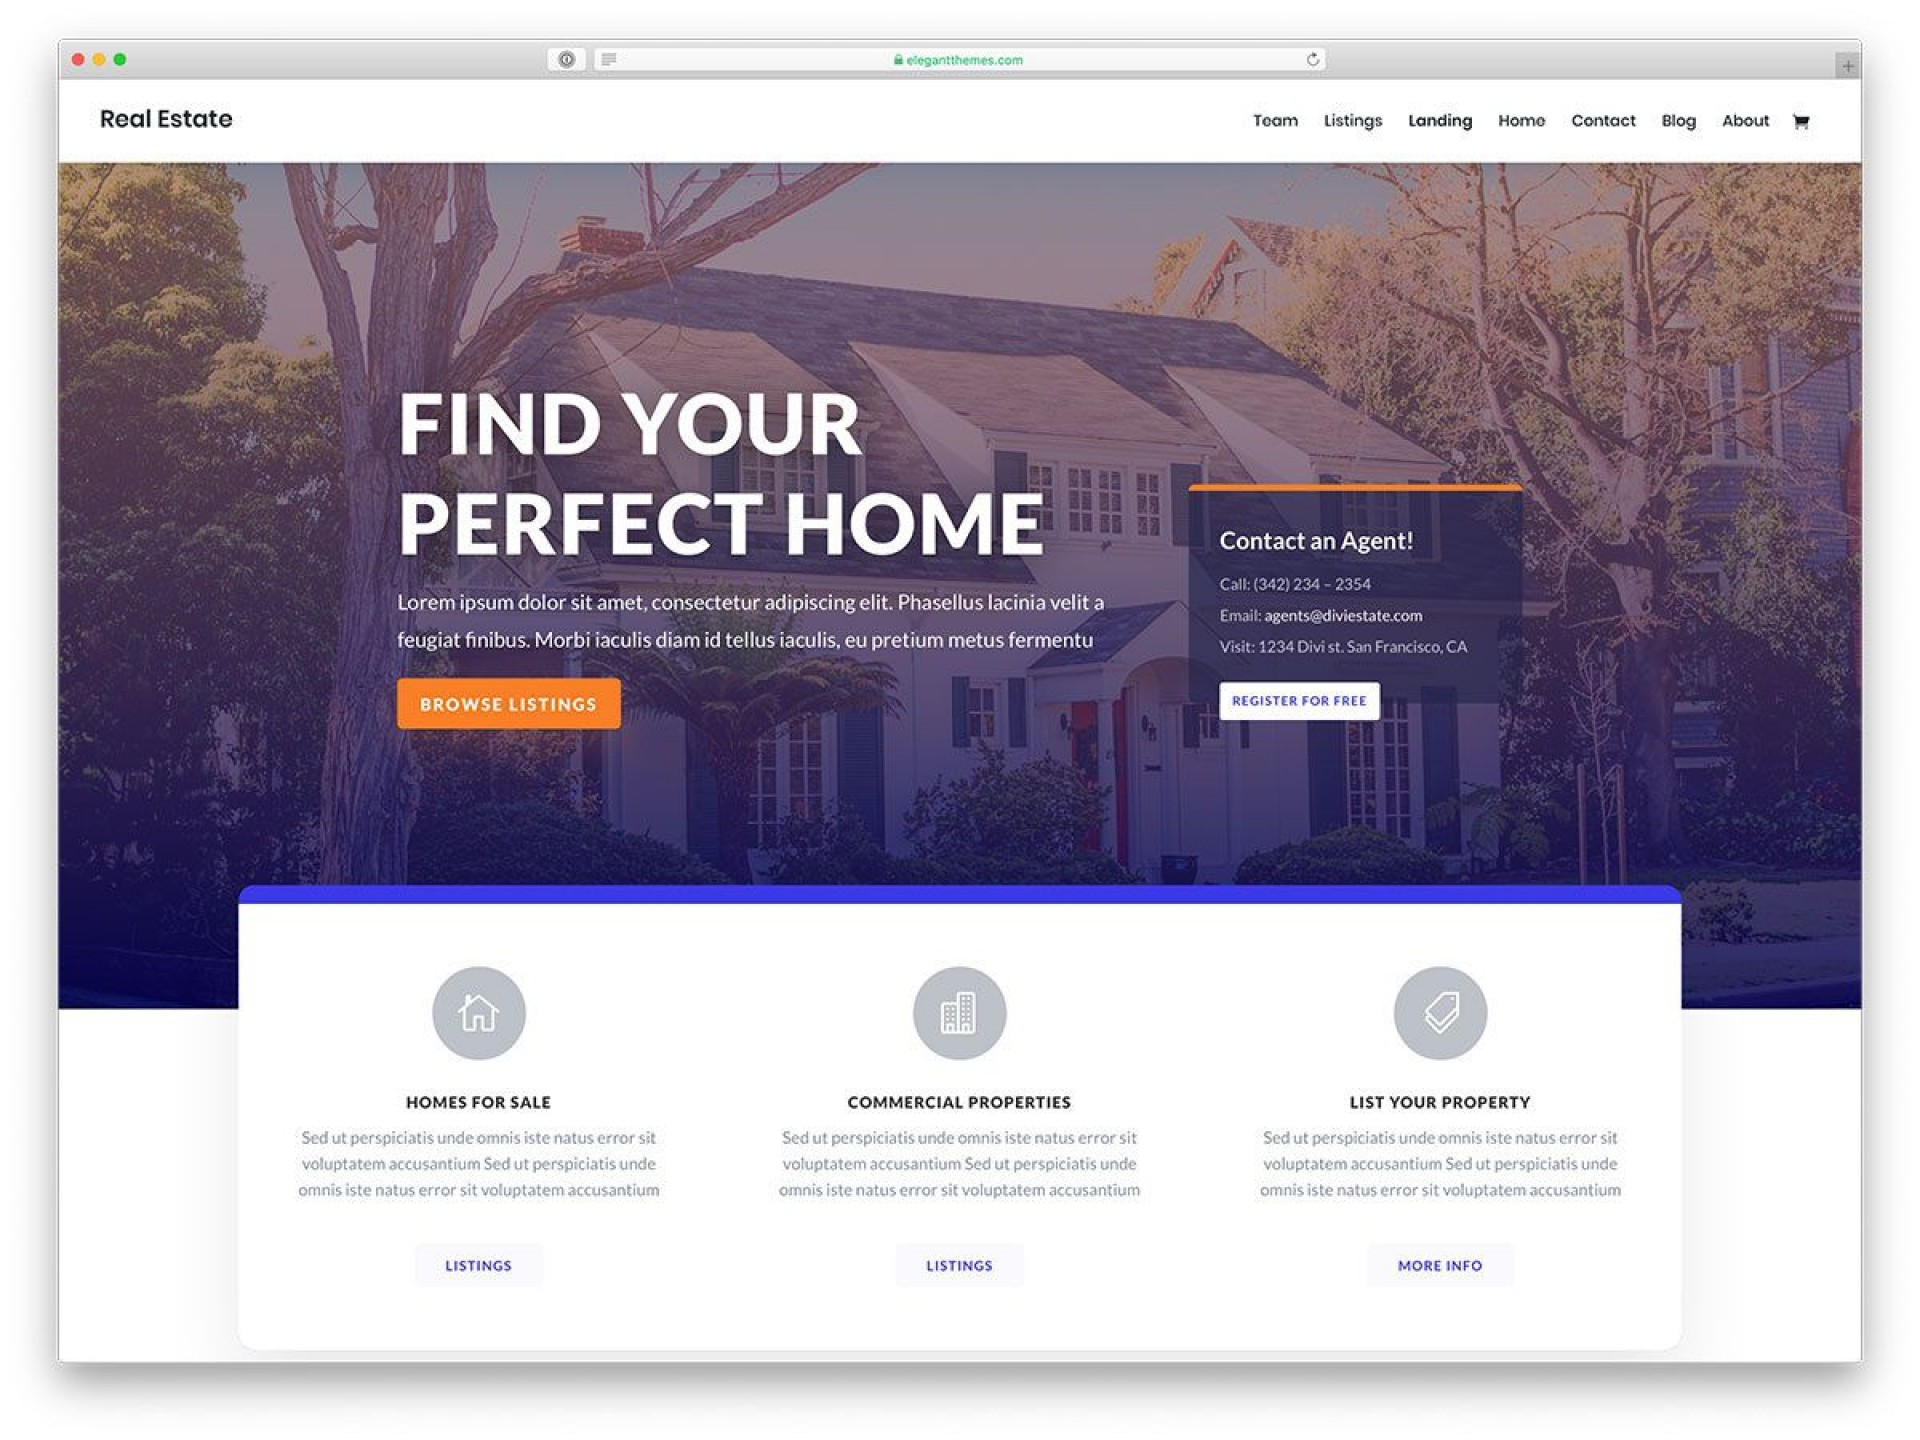 005 Formidable Real Estate Template Wordpres Idea  Homepres - Theme Free Download Realtyspace1920